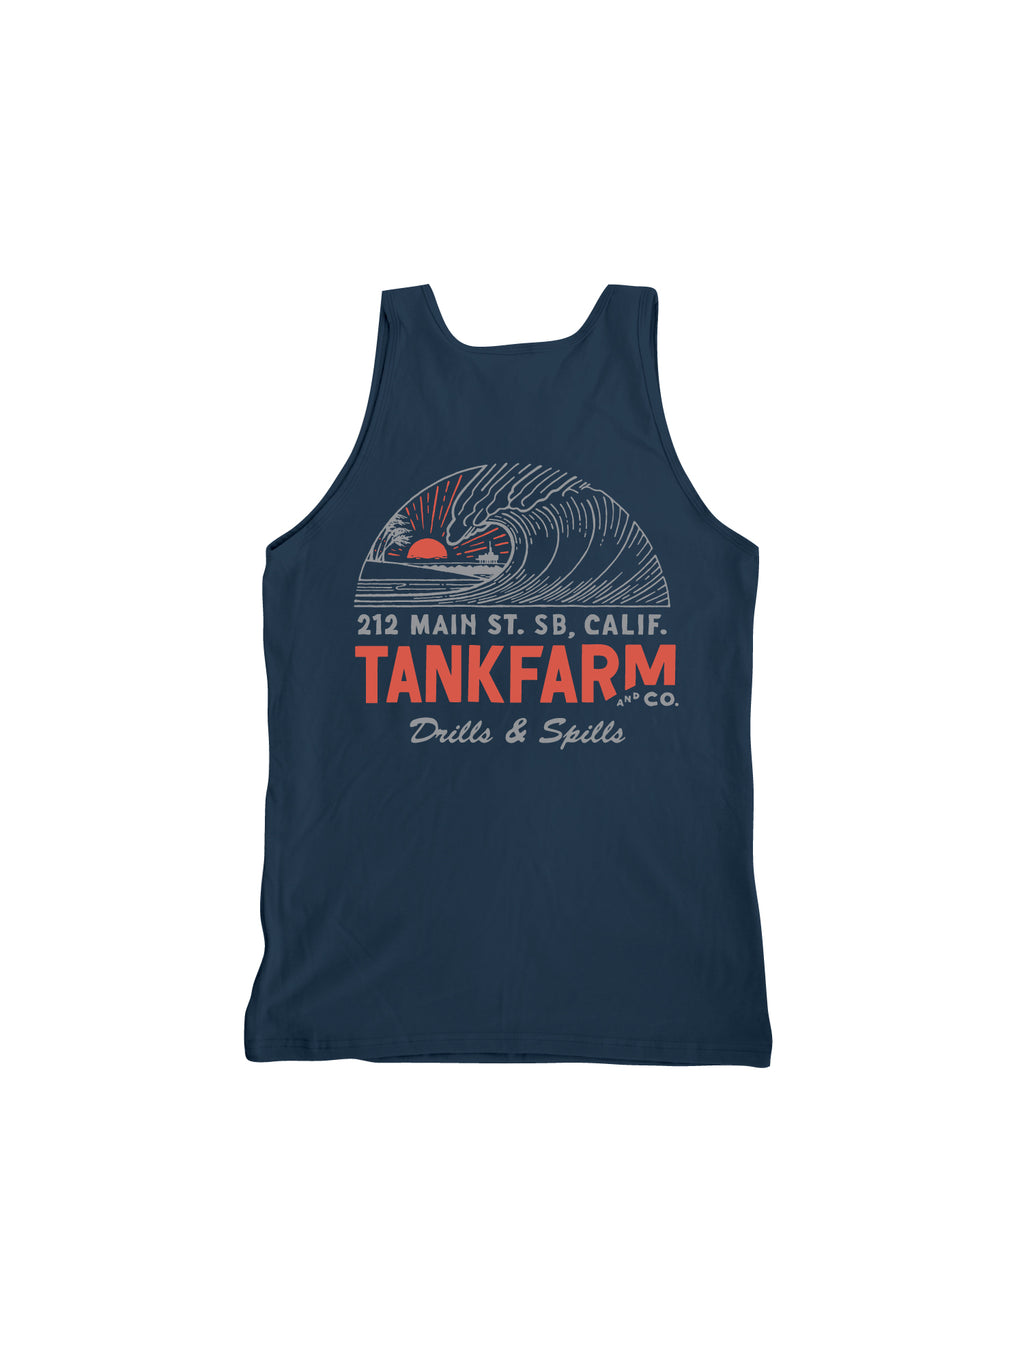 DRILLS & SPILLS TANK - NAVY - Tankfarm & Co.